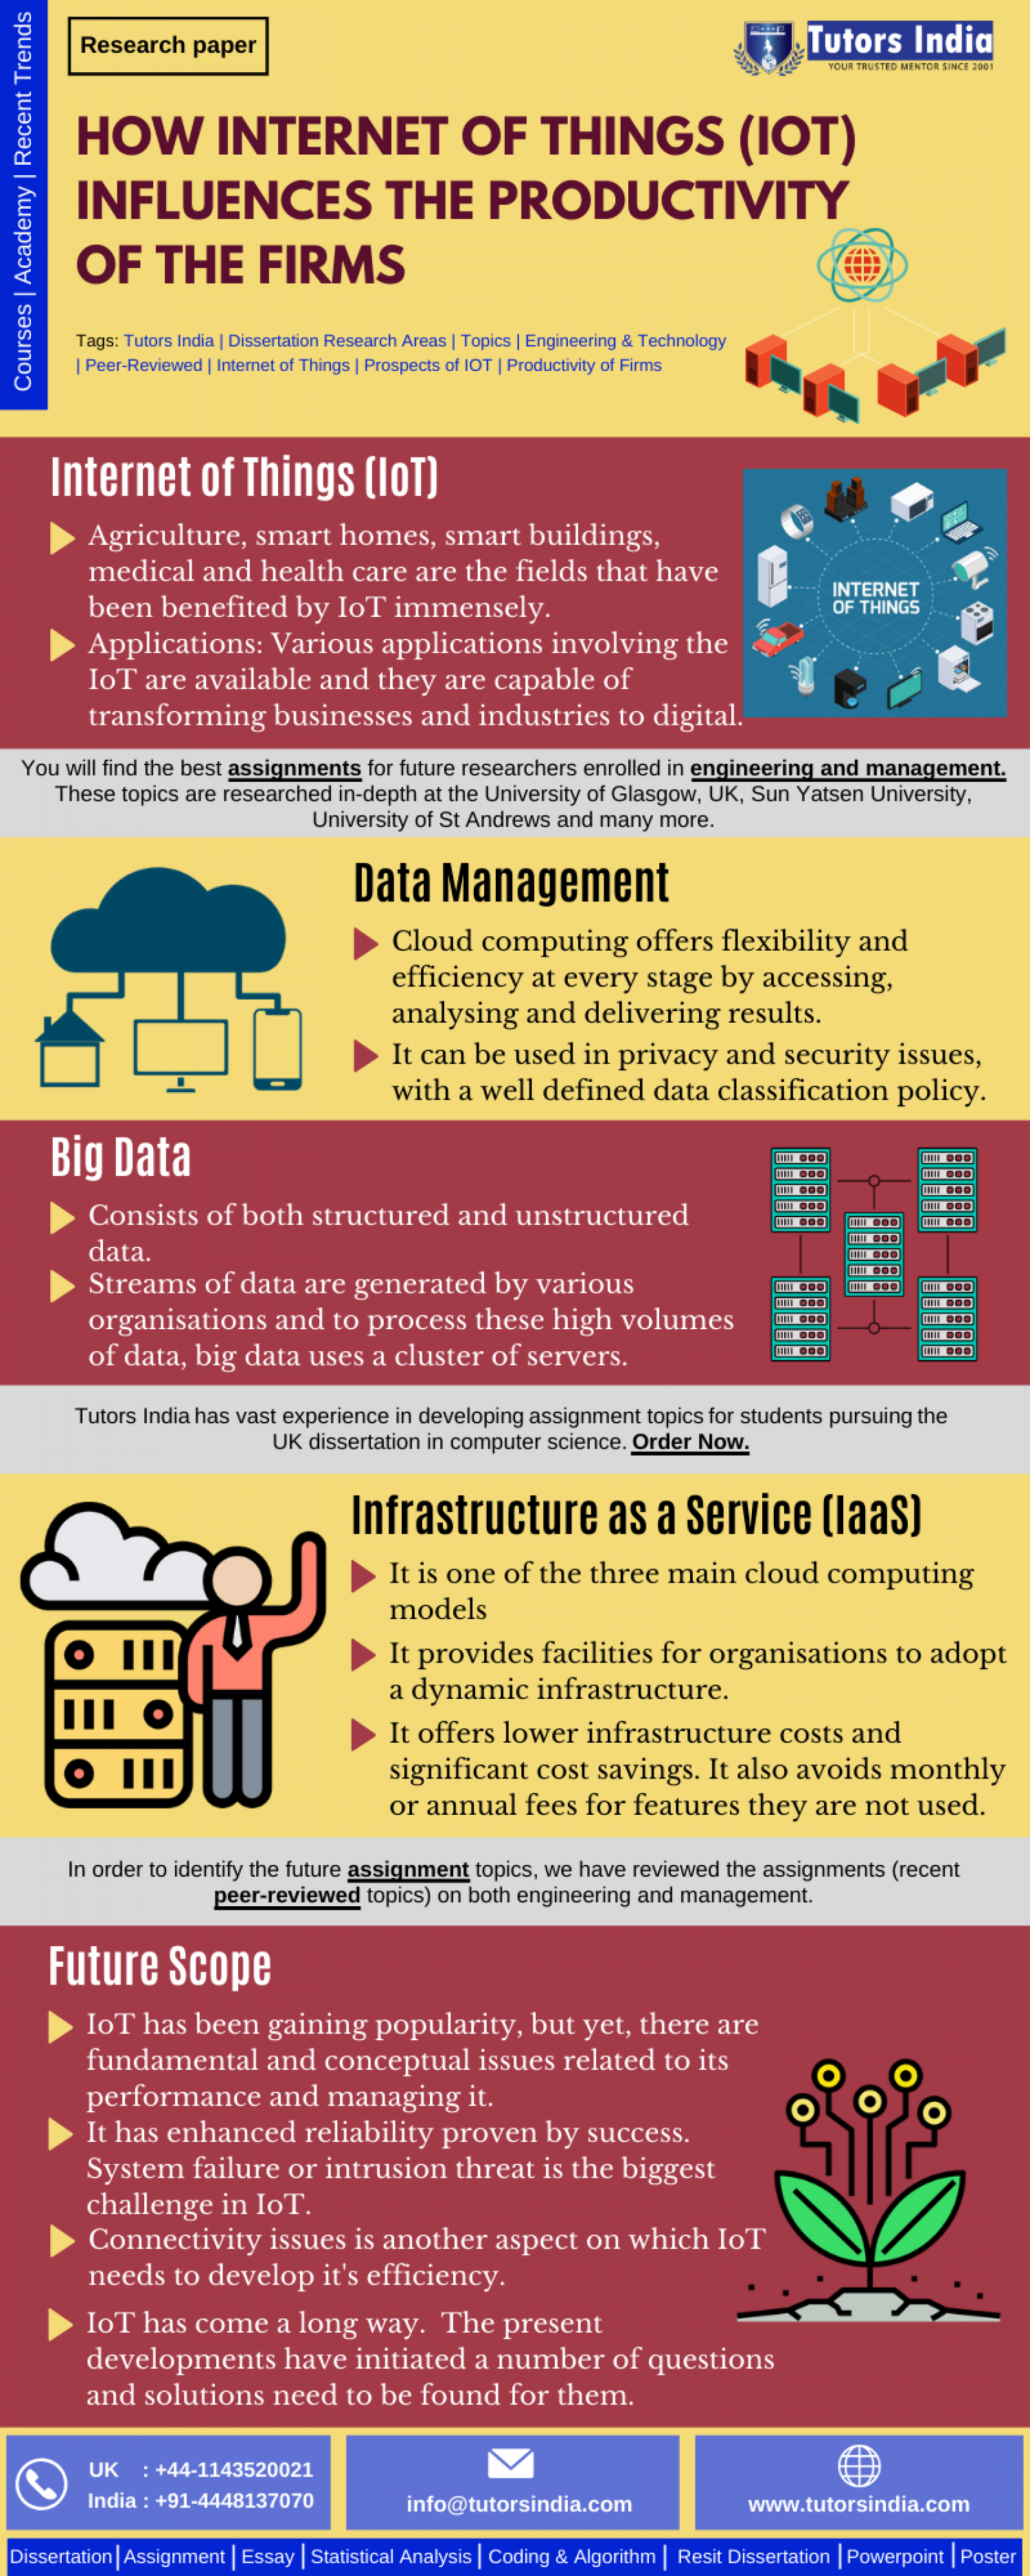 Engineering Dissertation Writing Services and Help in UK- How Internet of Things (Iot) Influences the Productivity of The Firms Infographic